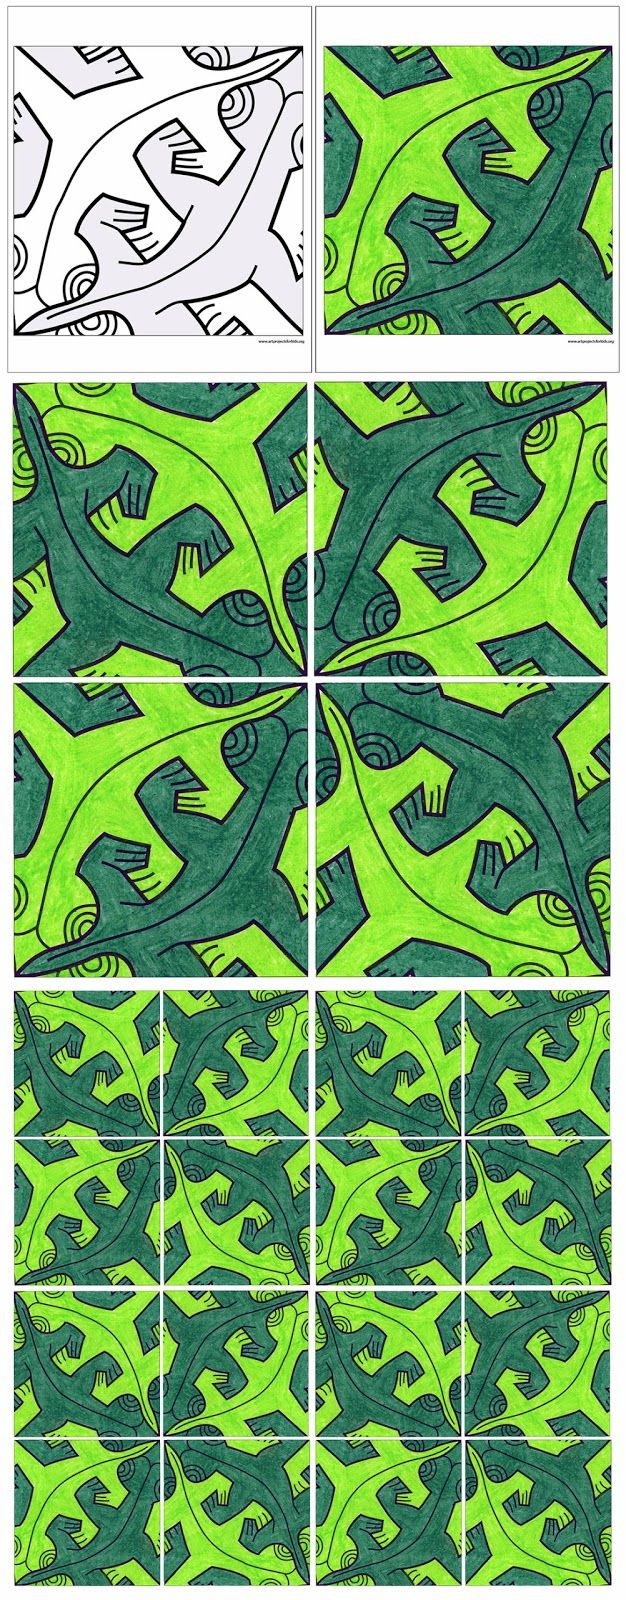 Art Projects for Kids: Escher Mural, Free Page Download